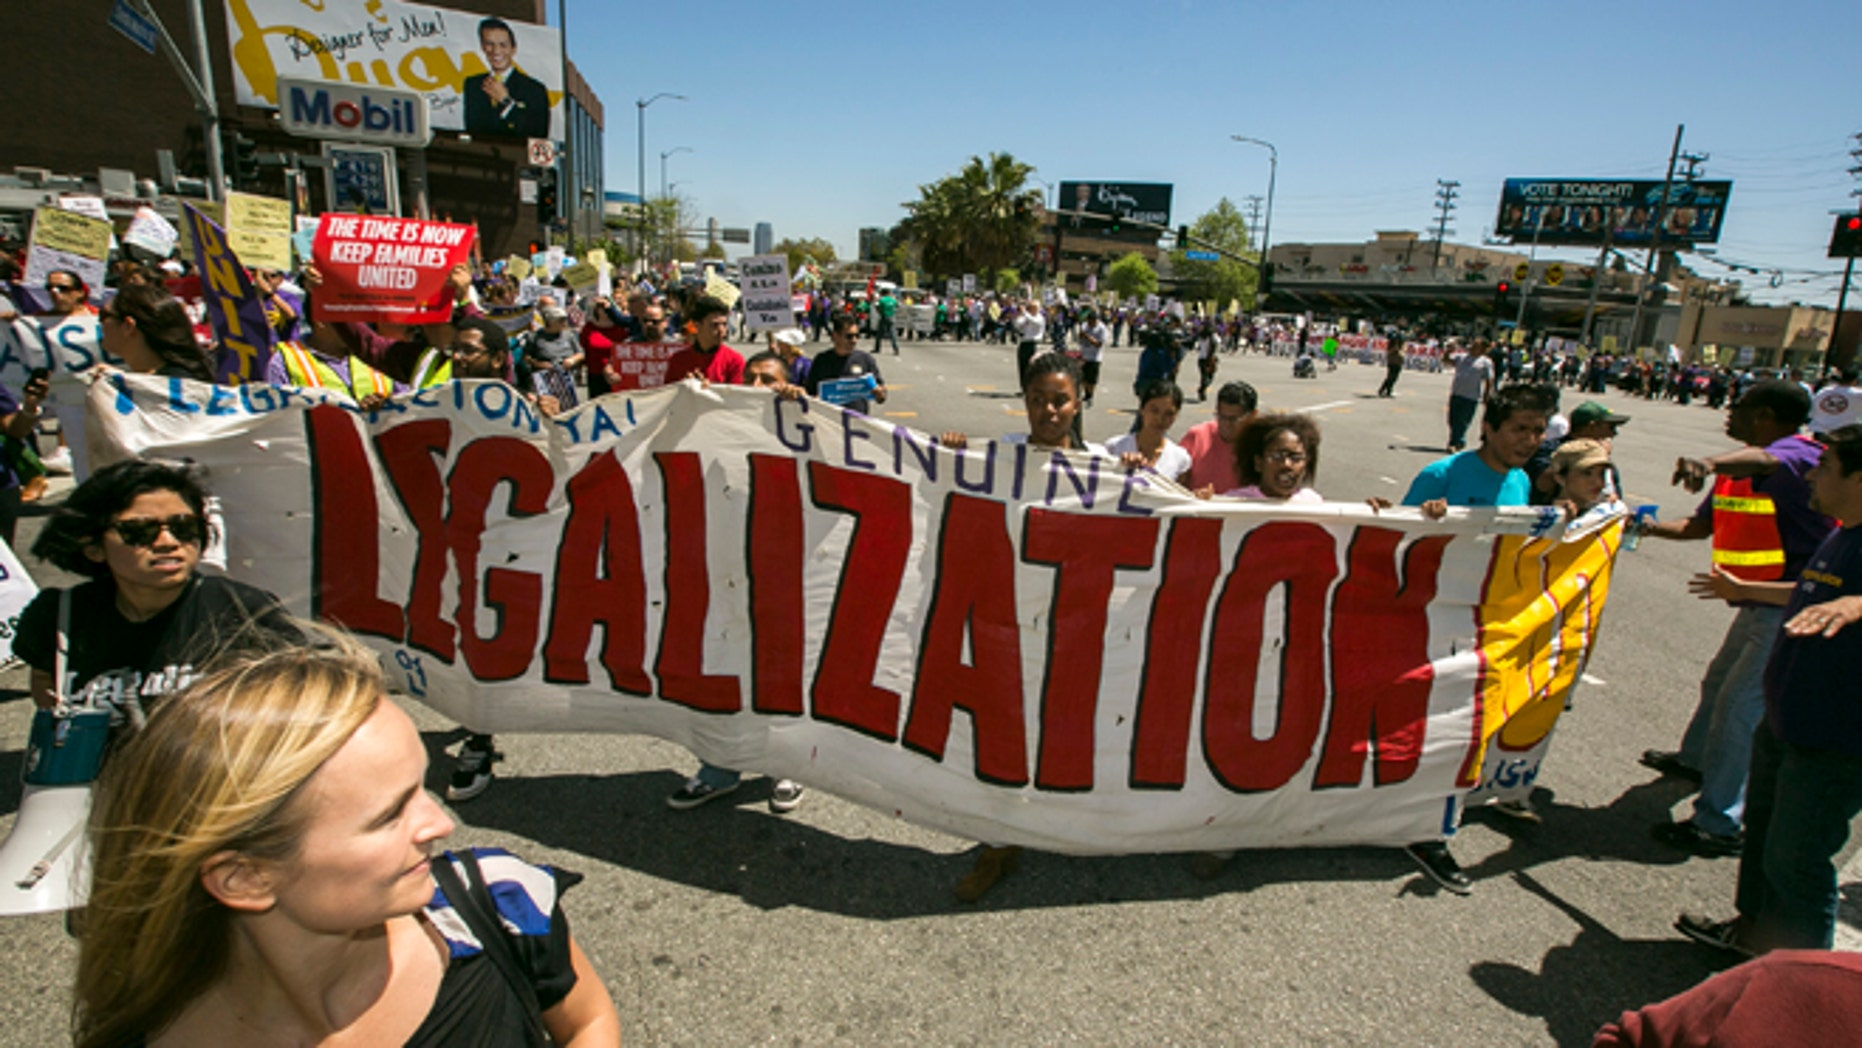 April 10, 2013: Activists rally for immigration reform in Los Angeles.